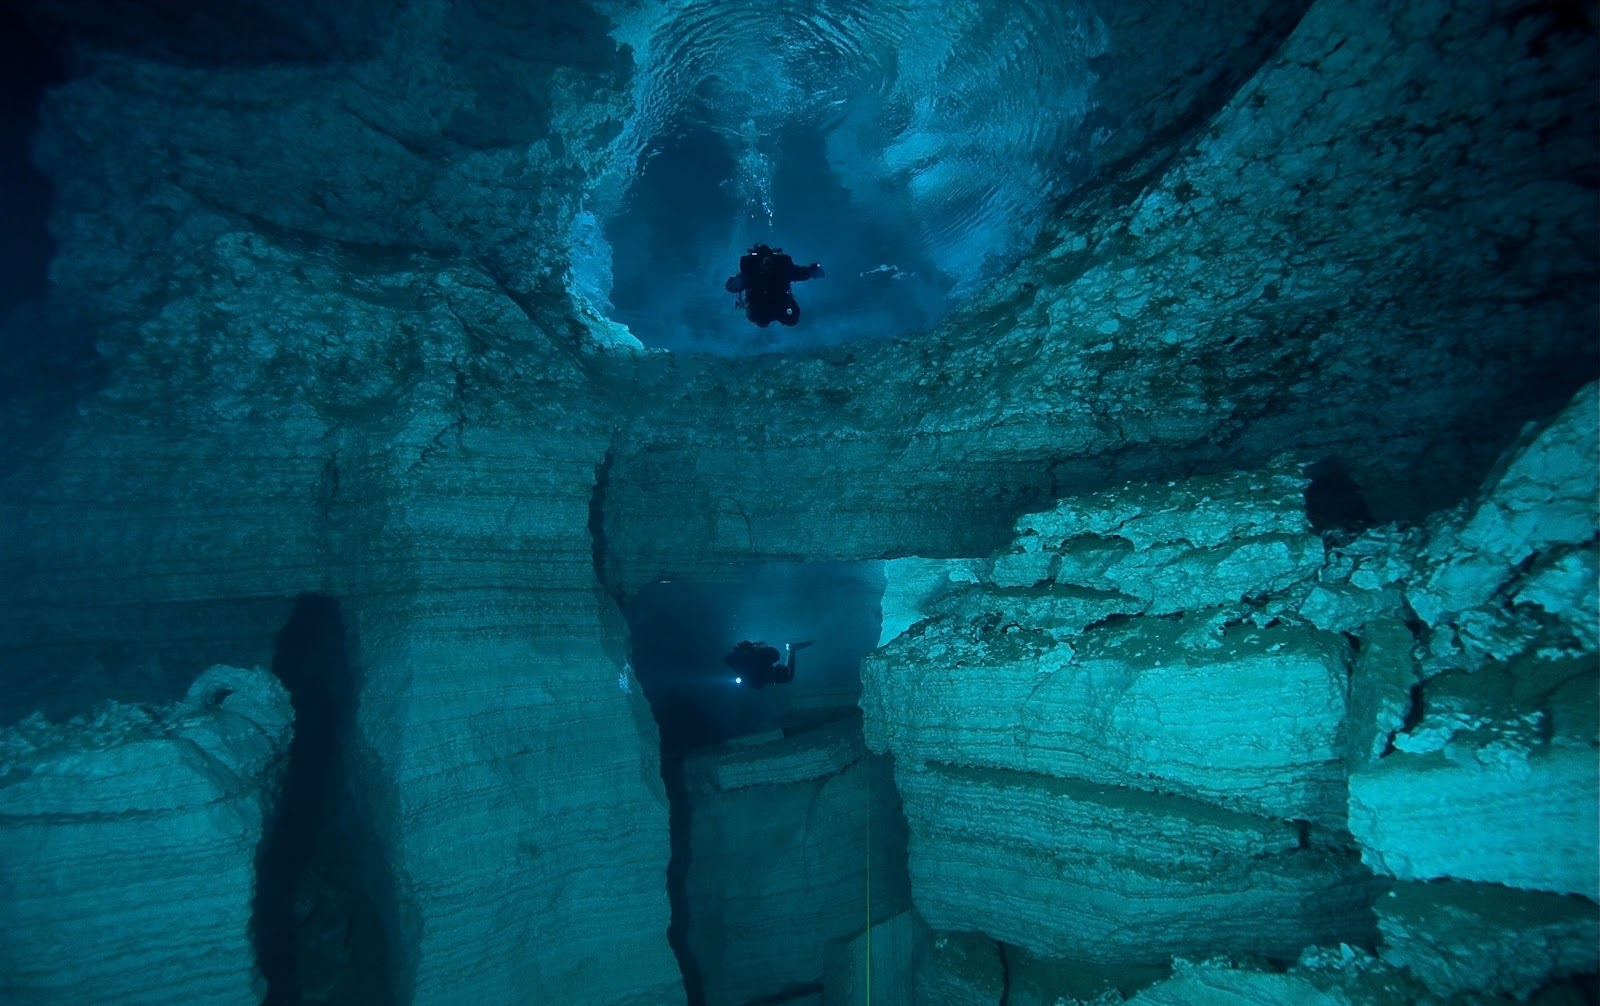 Marble Caves diving, Chile